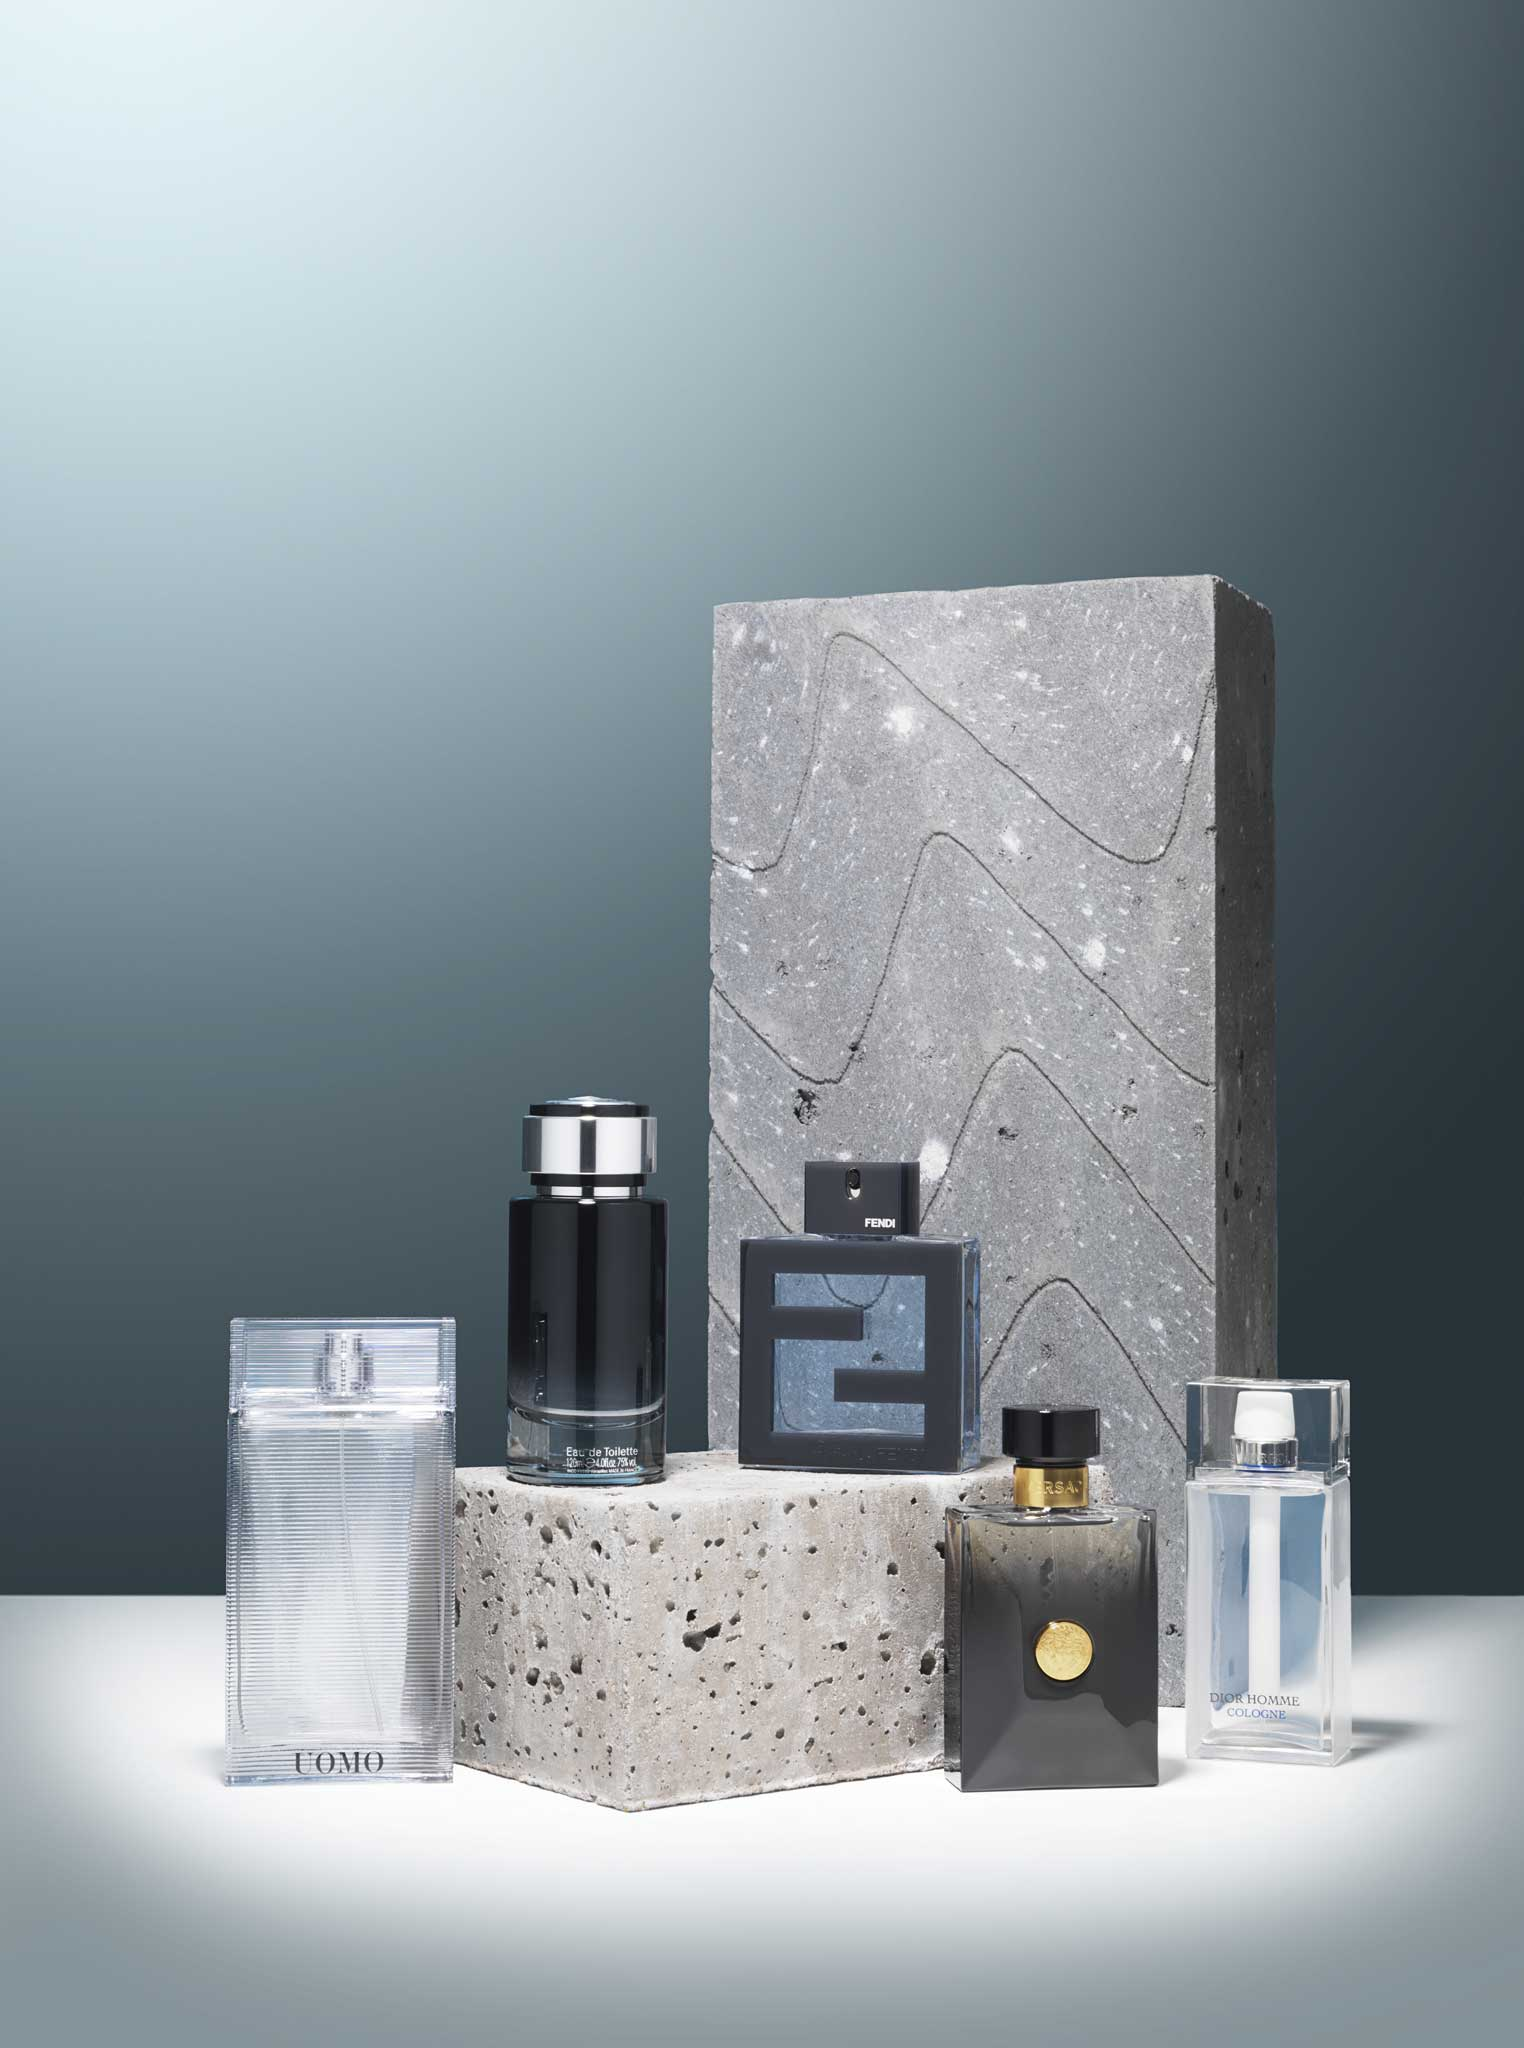 Scent of summer: Our pick of men's colognes